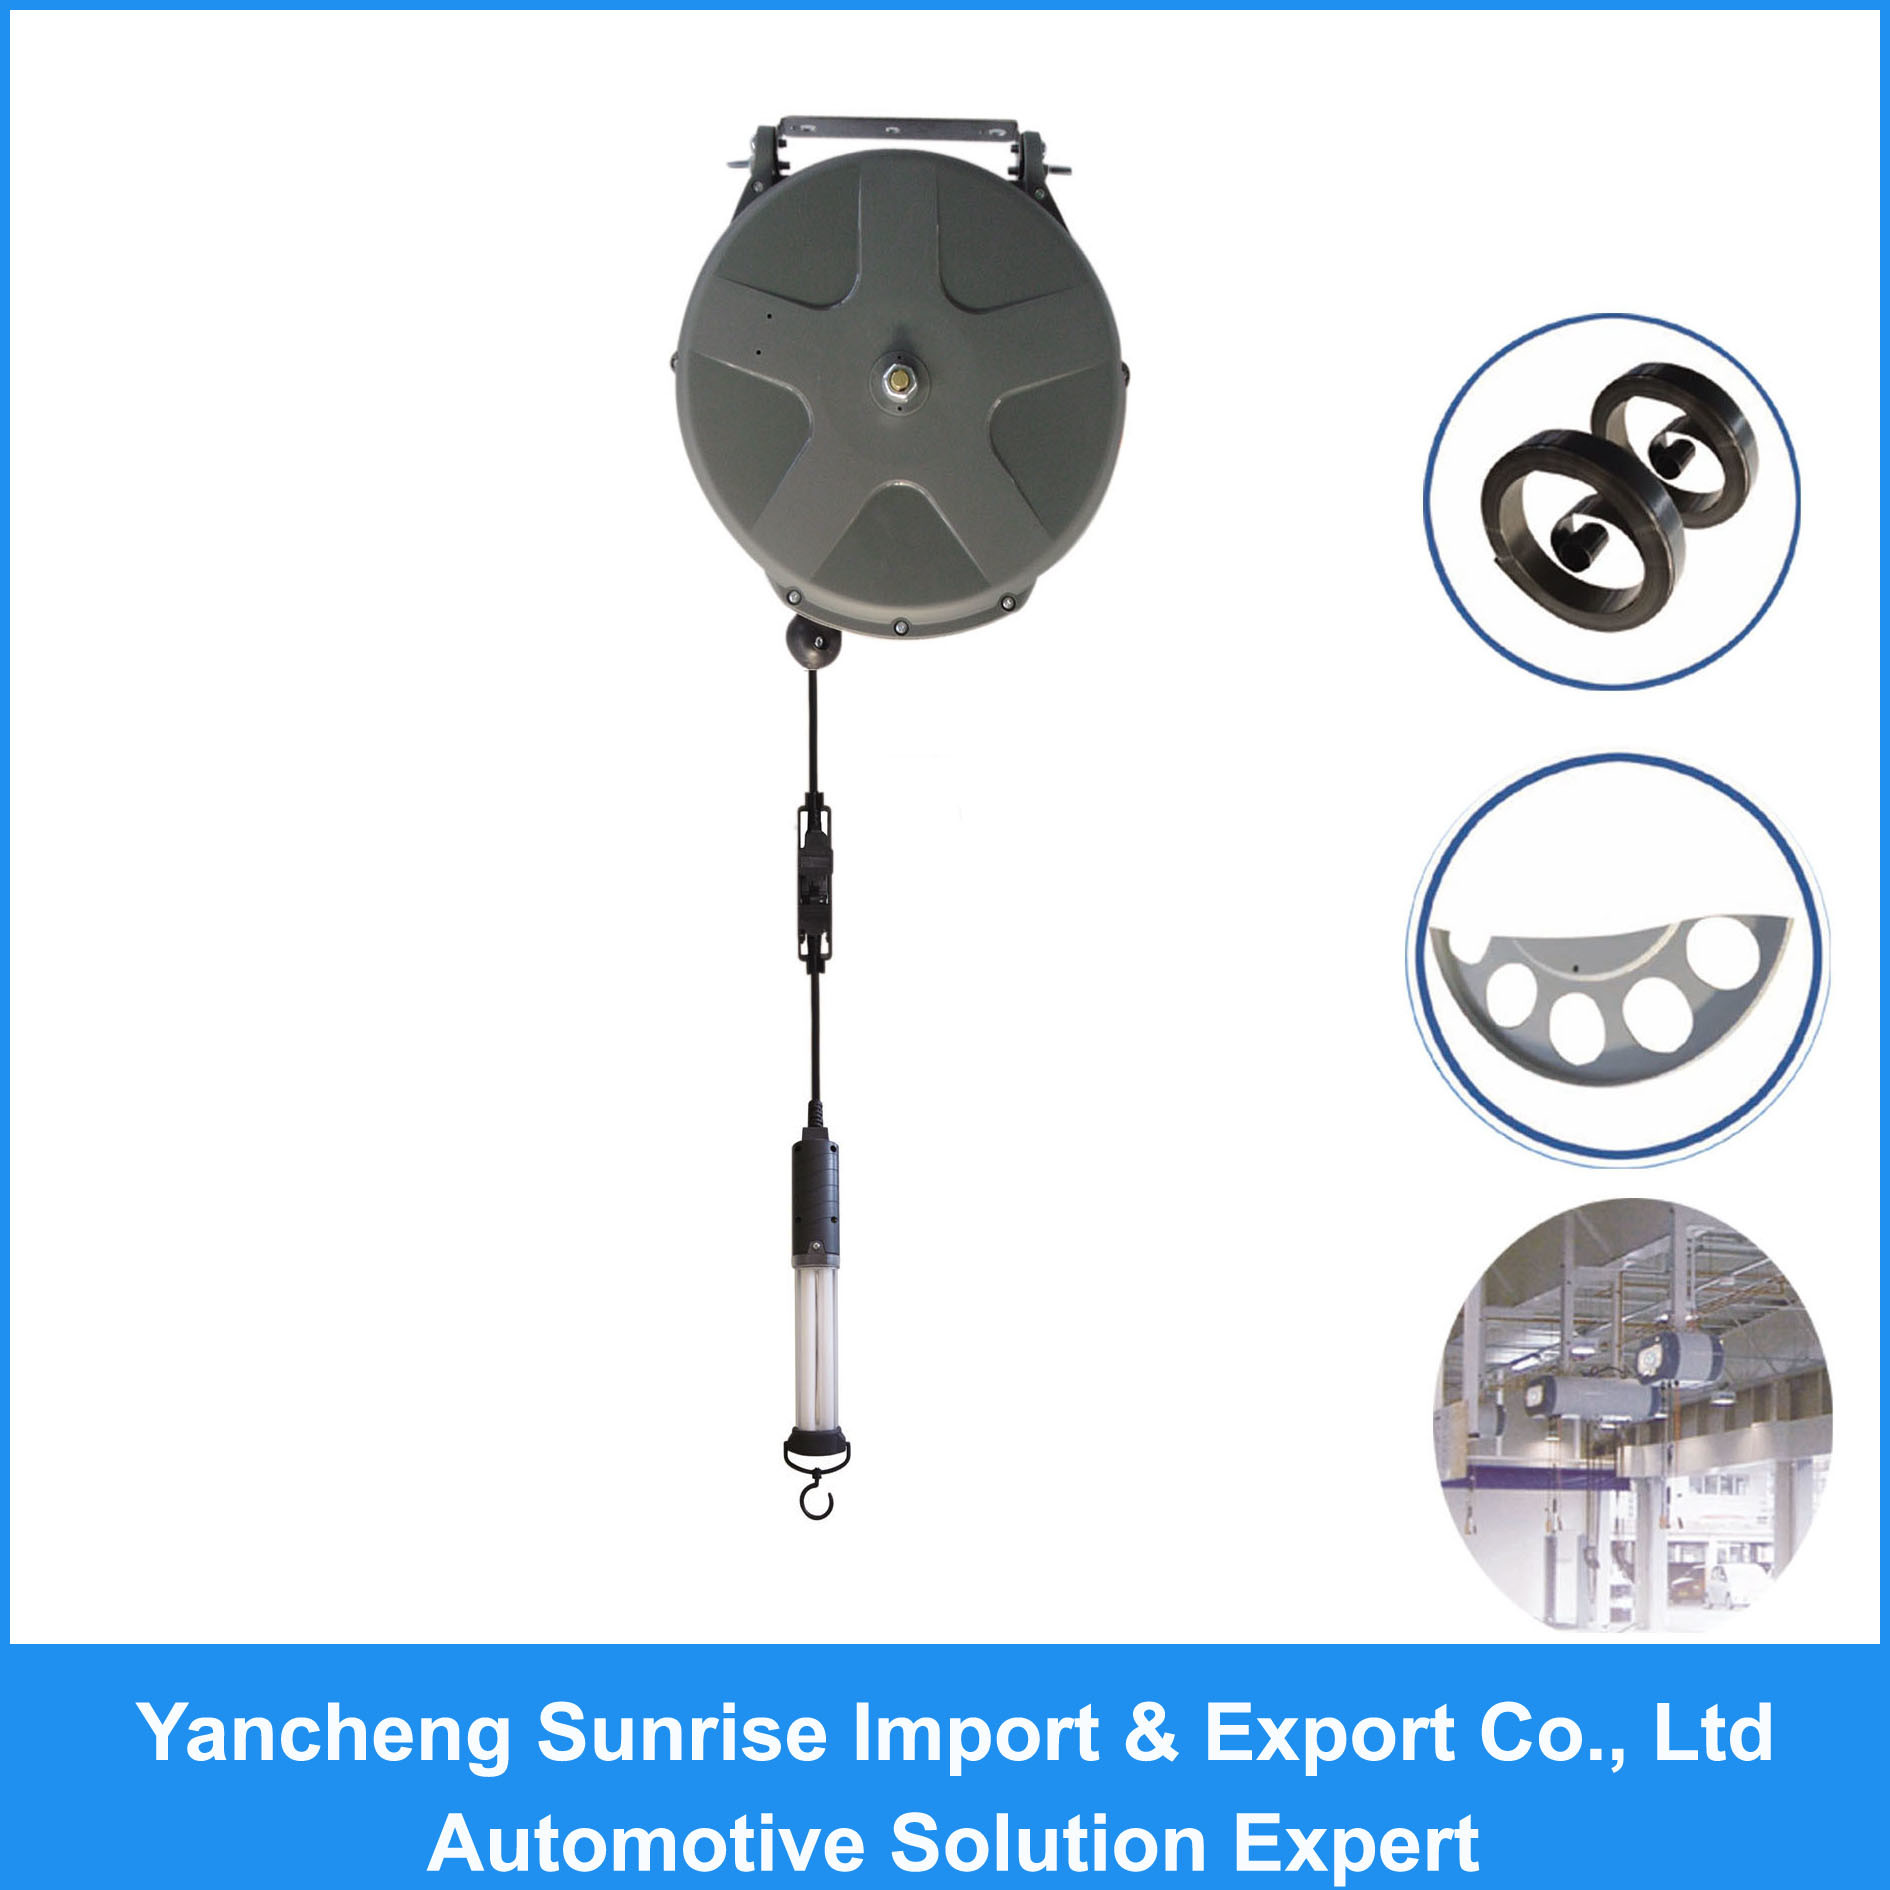 Cable Hose Reel / Cord Hose Reel with Lamp (TLR-18W)